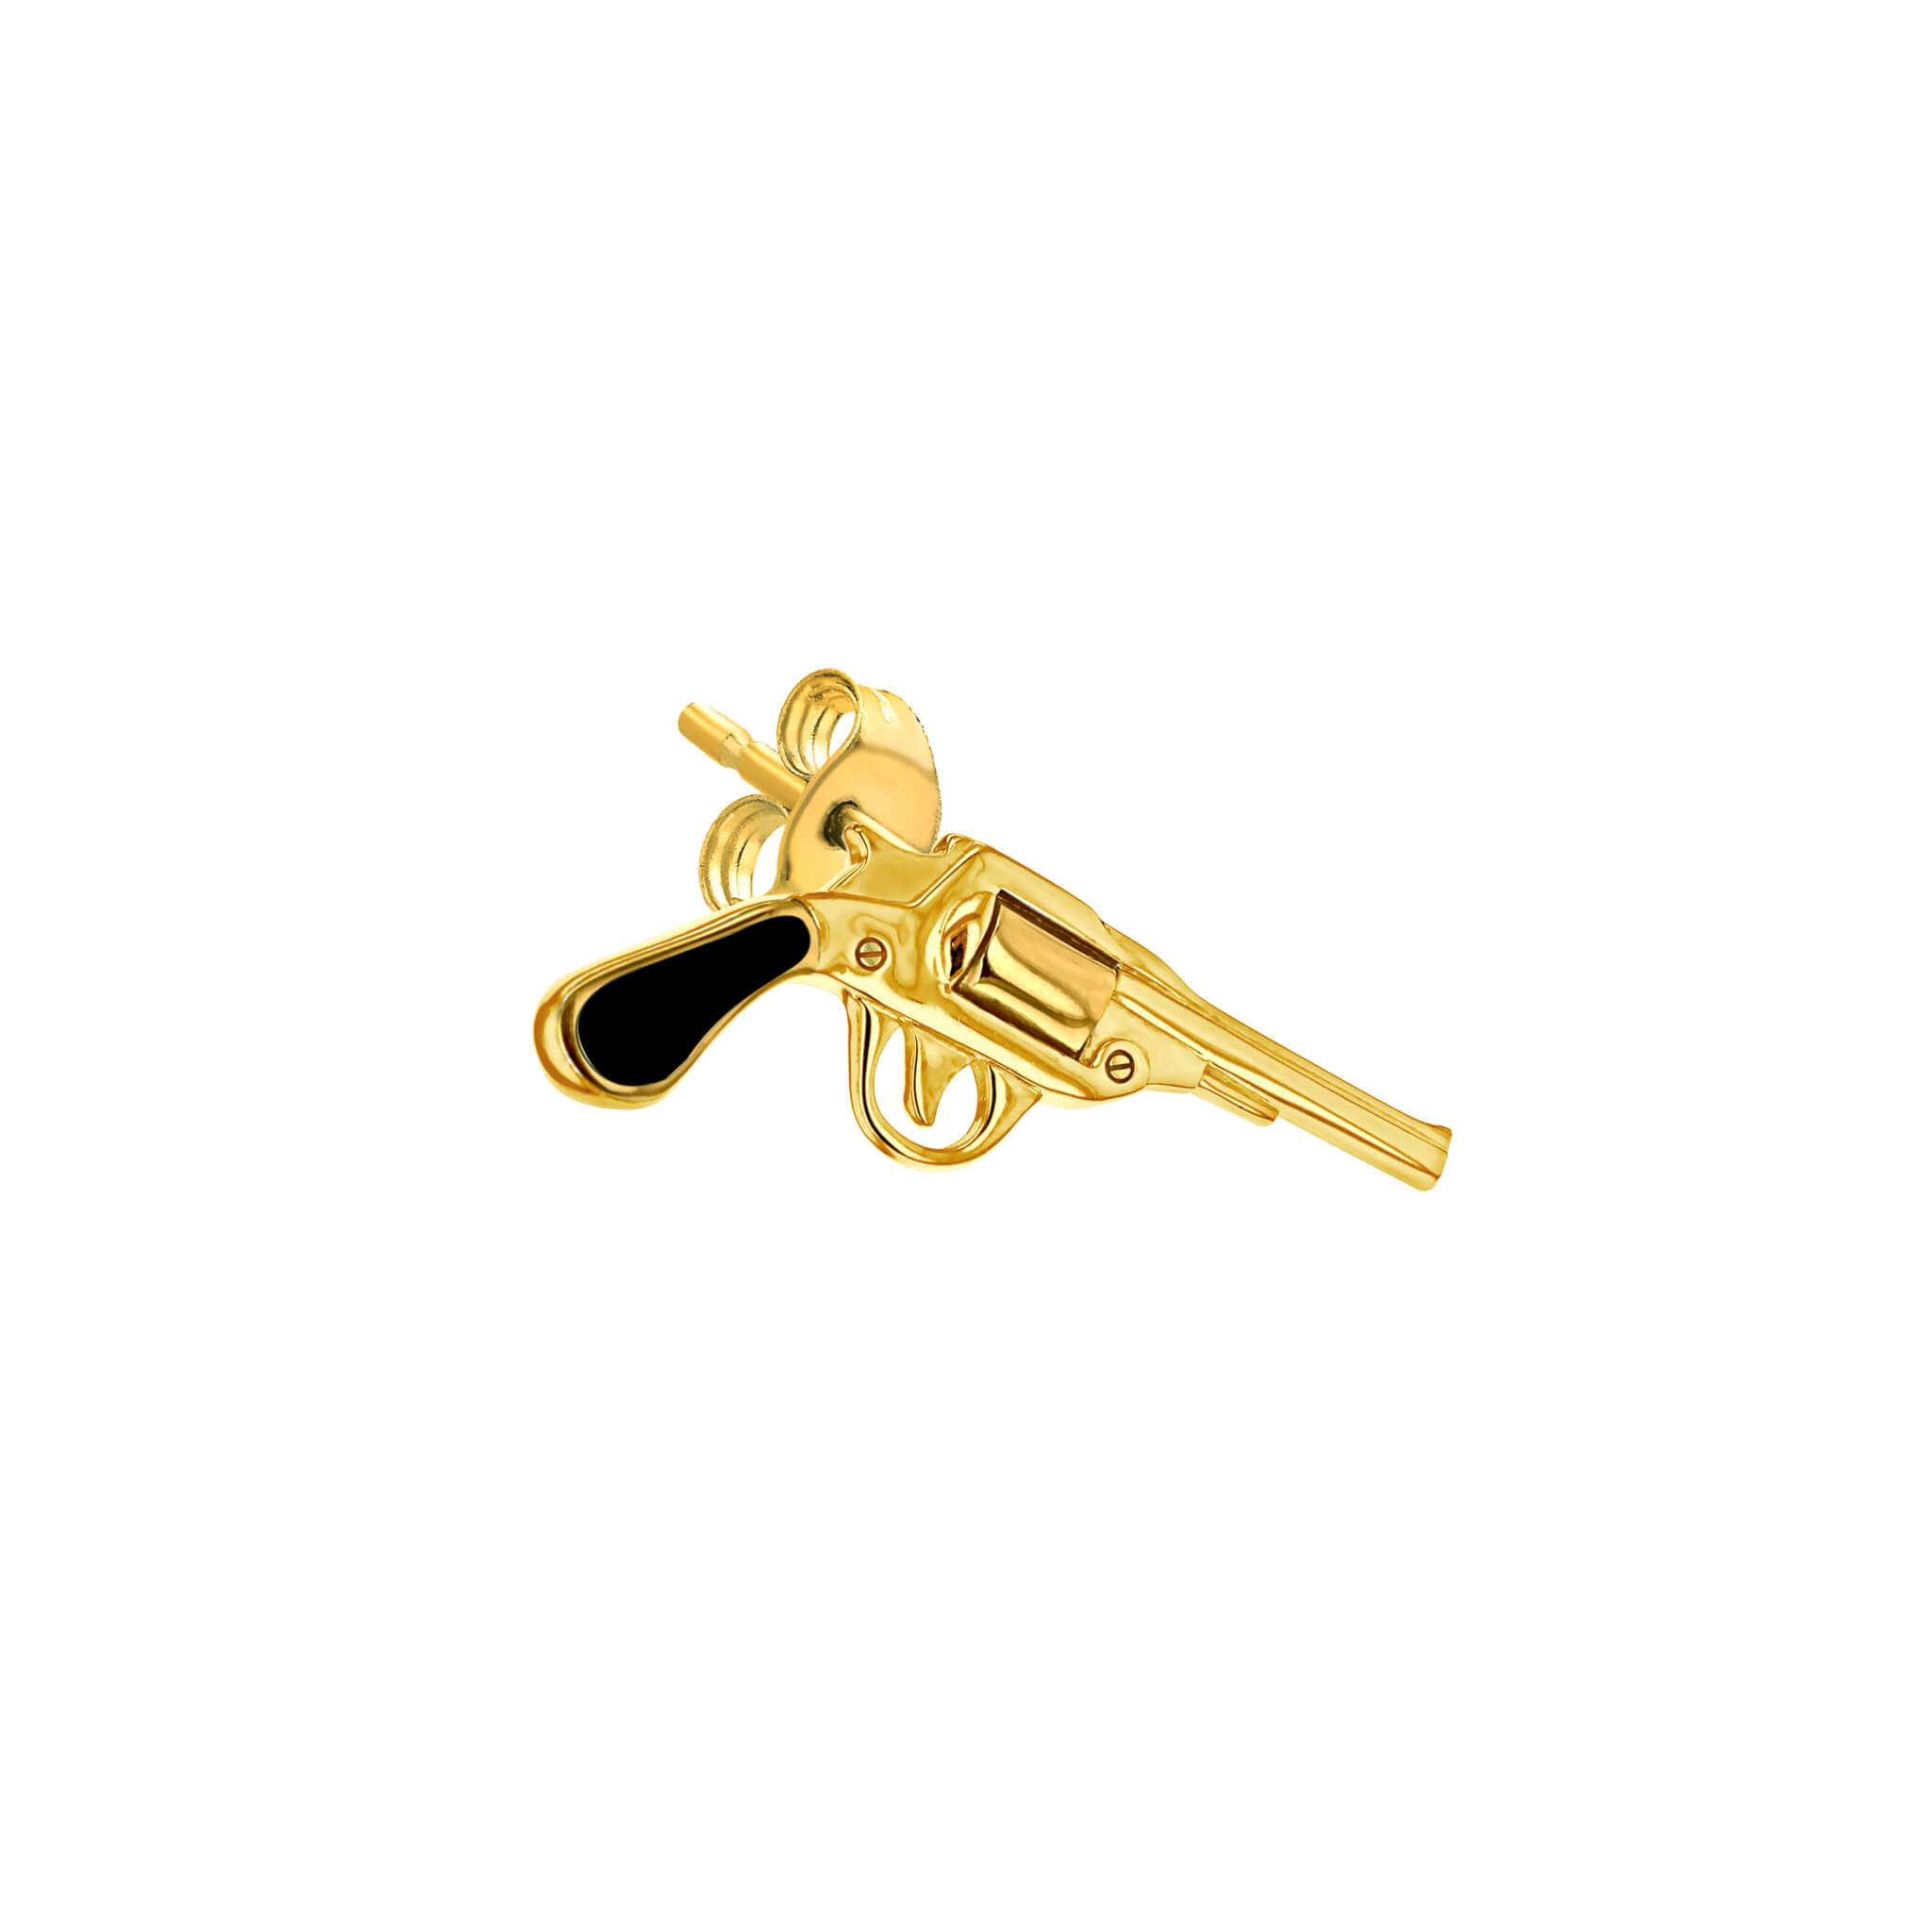 Stud Blaclk & Gold Pistol for right ear